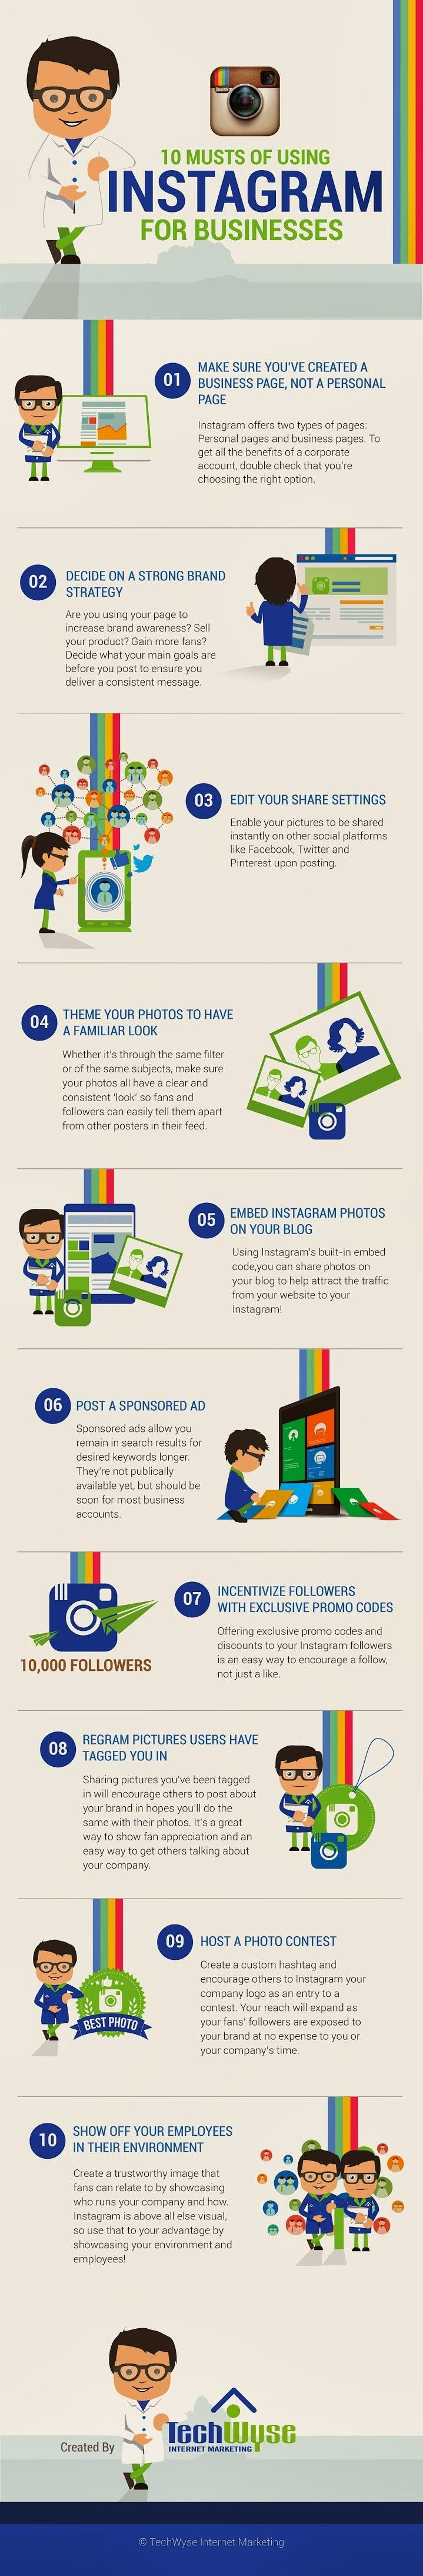 "Instagram for Business: Die 10 wichtigsten ""Musts"" #socialmedia #socialmediamarketing"